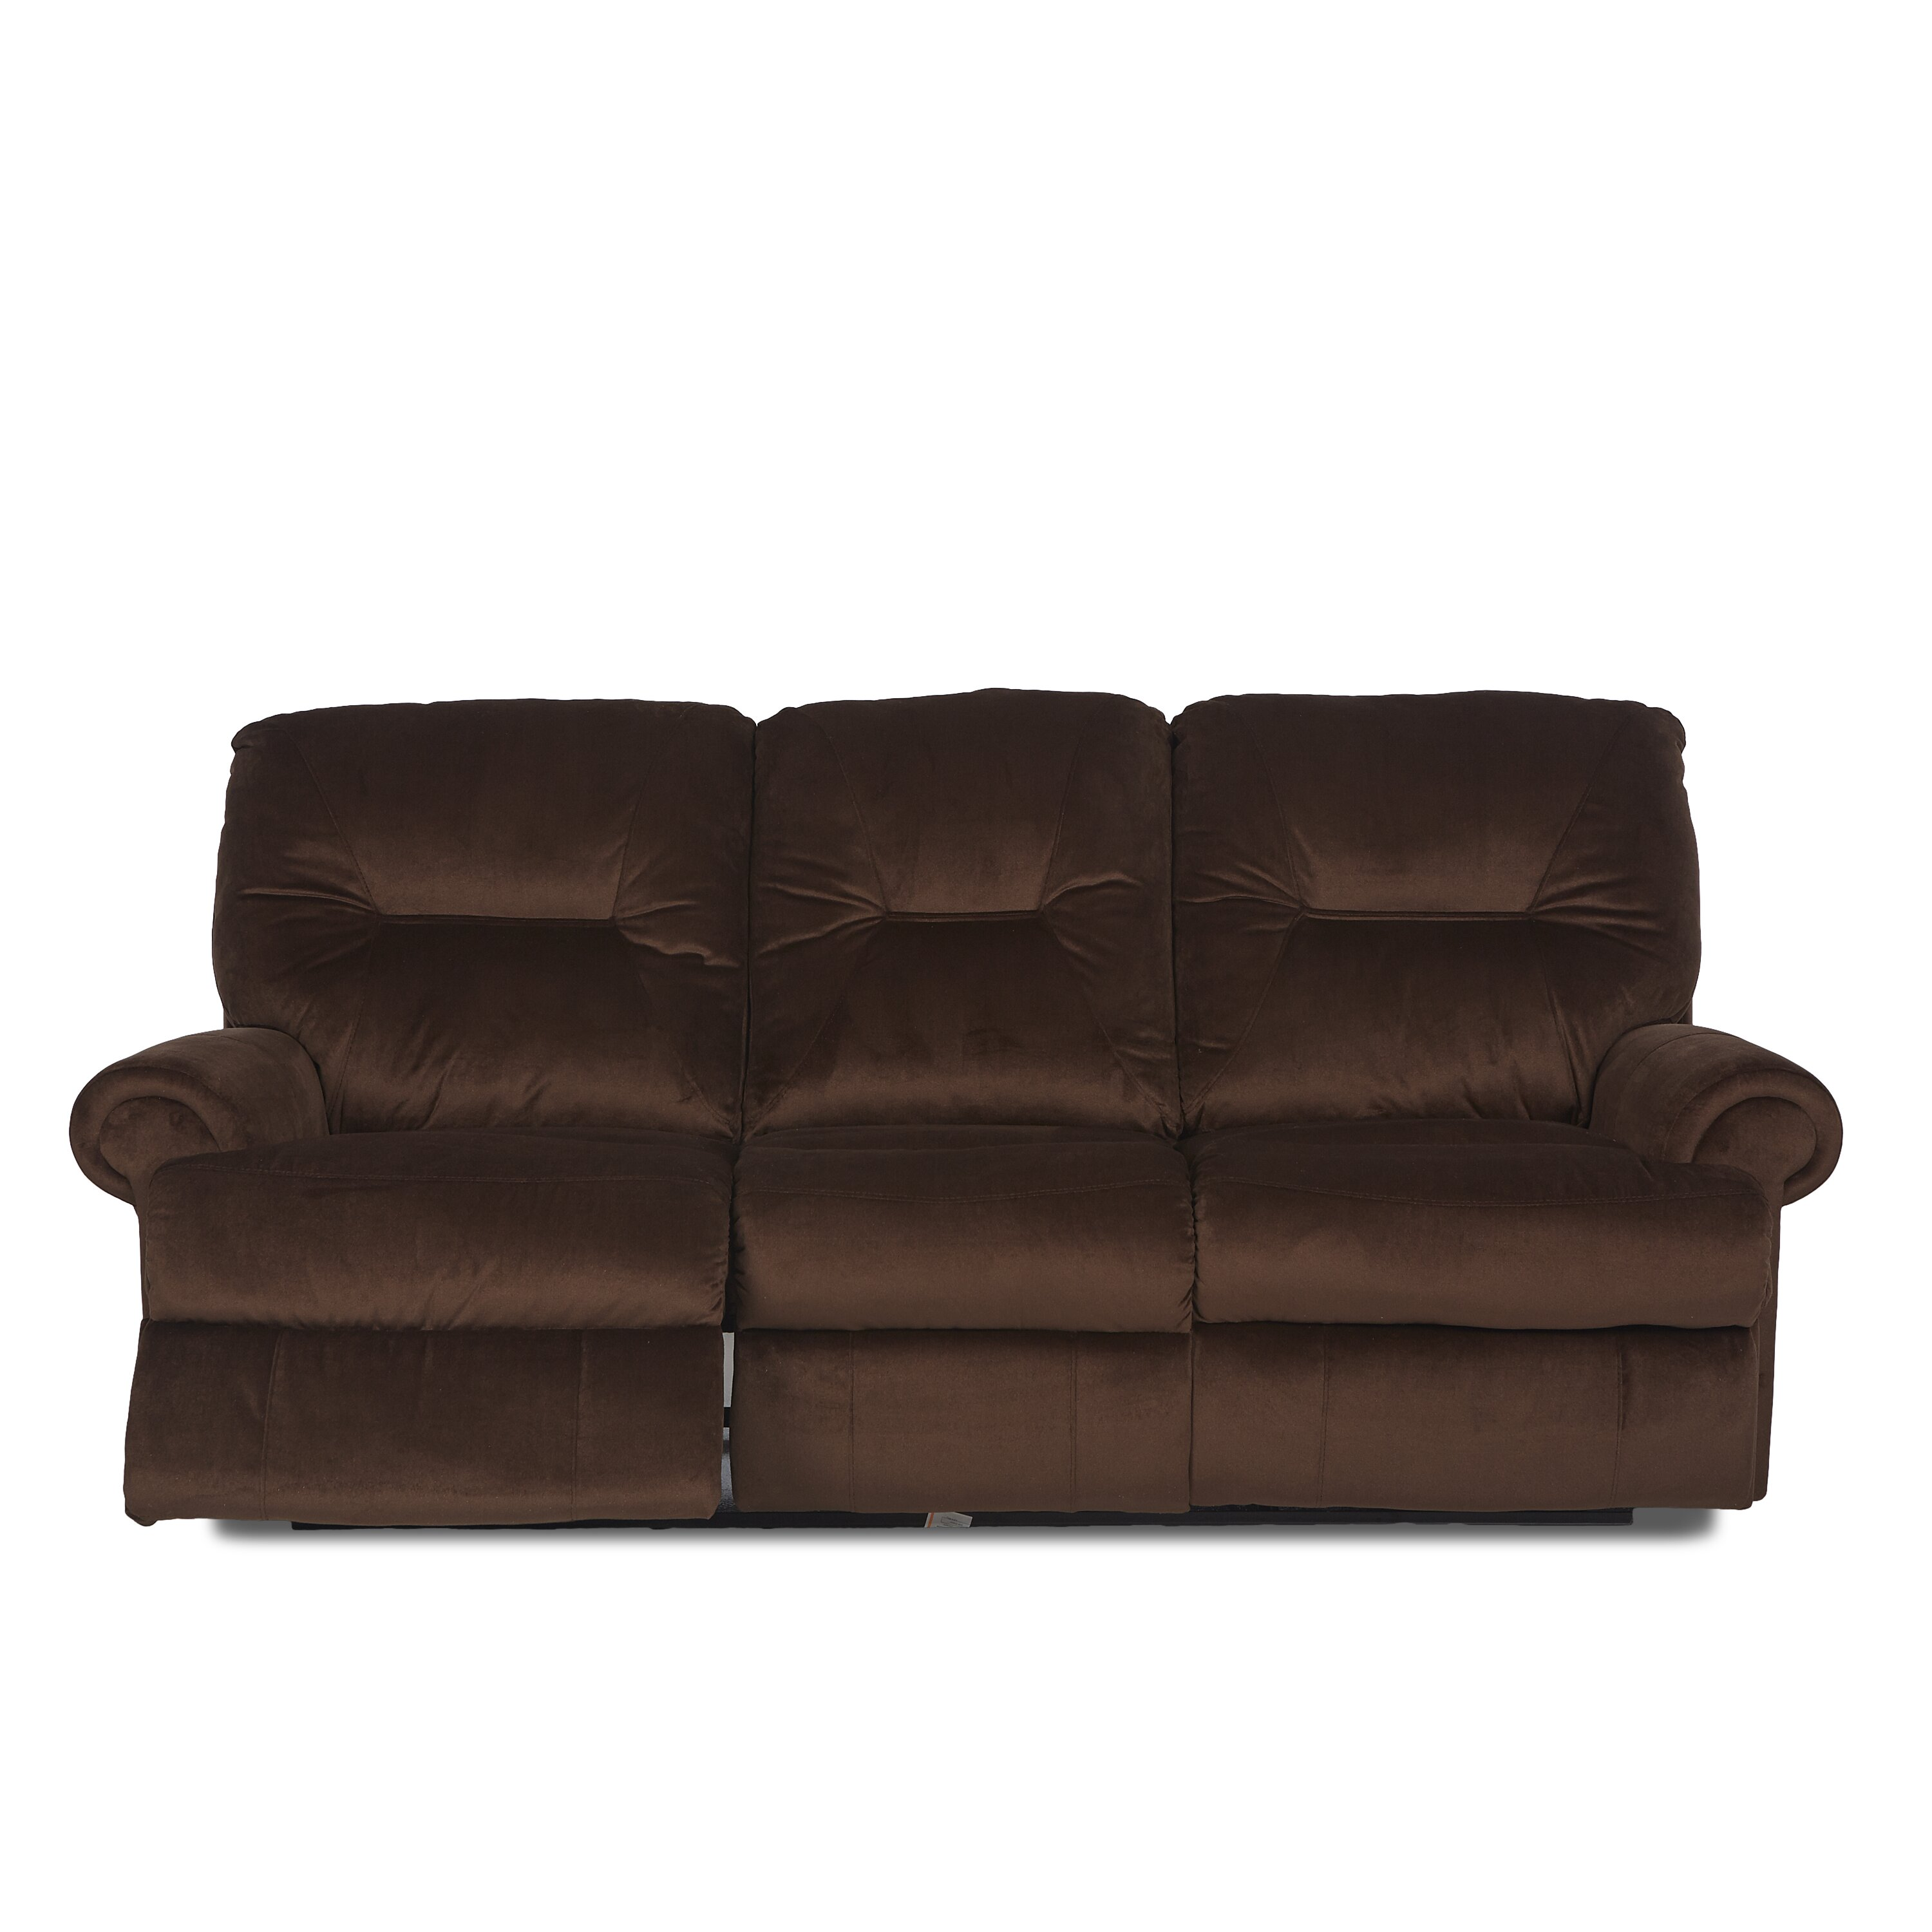 Klaussner Furniture Saco Reclining Sofa Wayfair